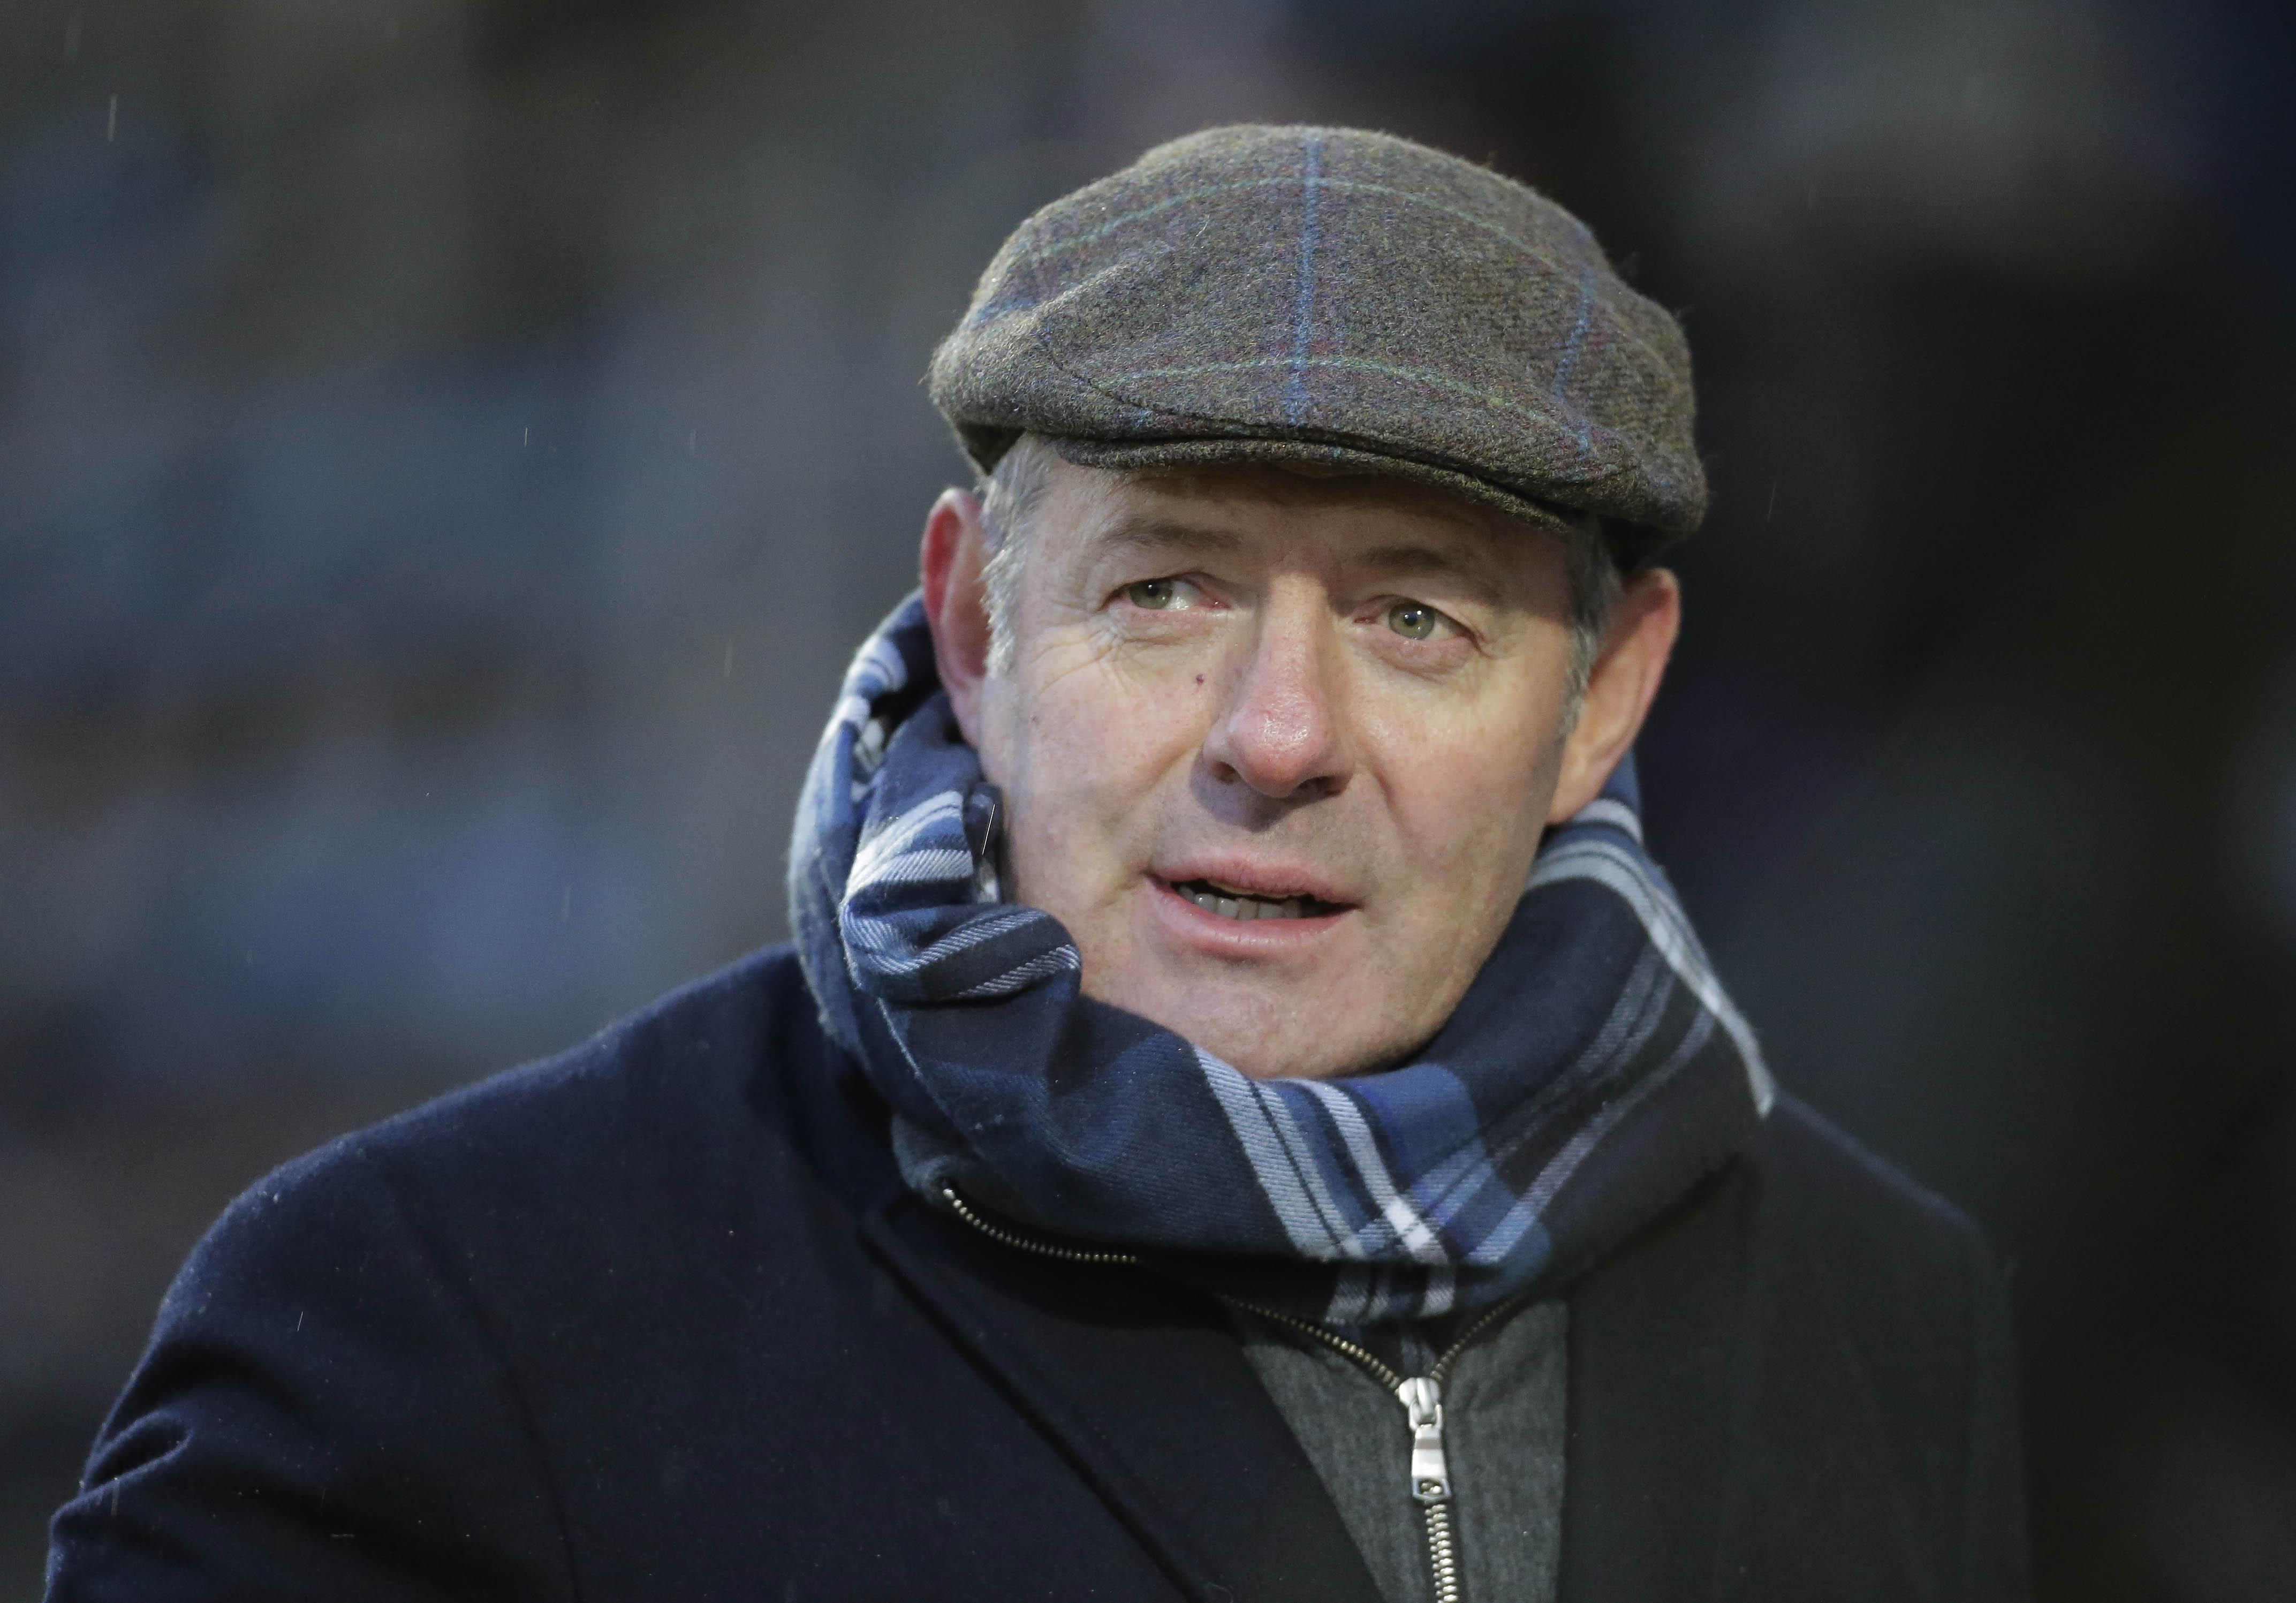 """Gavin Hastings talked about wanting to """"rub his face in the dirt"""" as England were pummelled by Scotland in the Six Nations"""